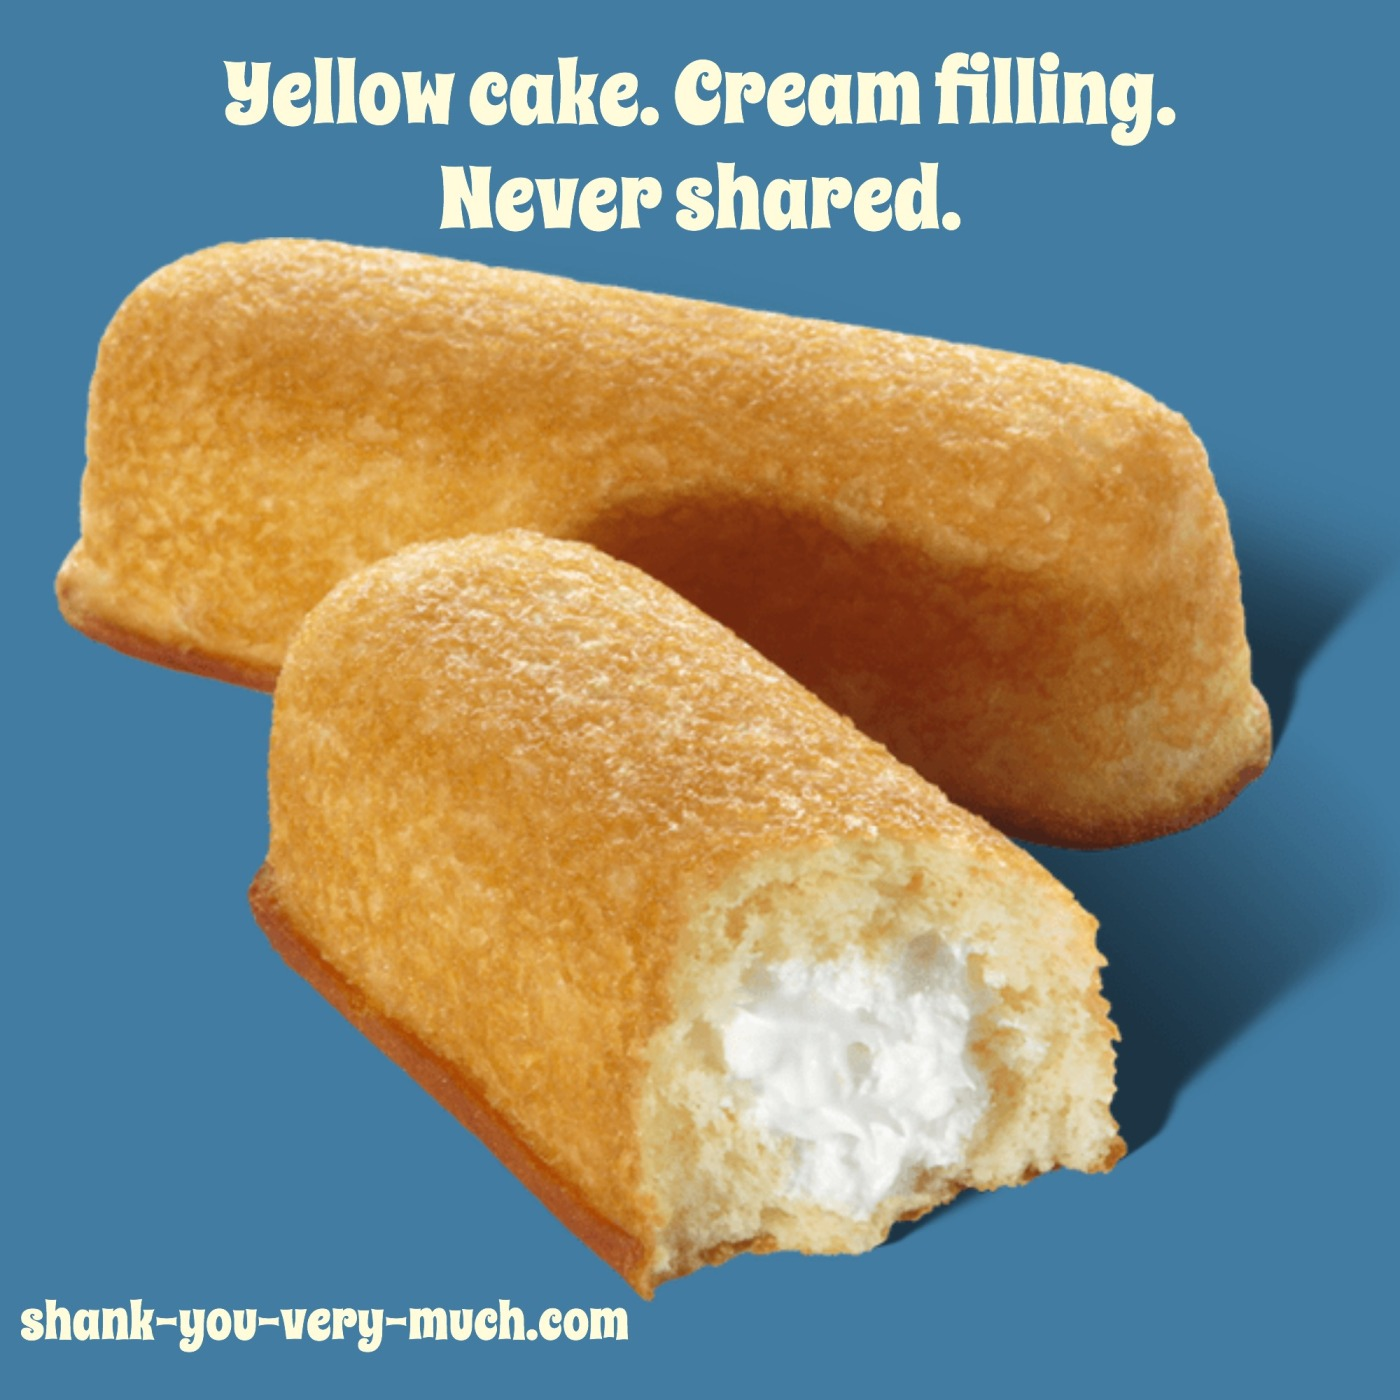 a picture of Twinkies with the caption